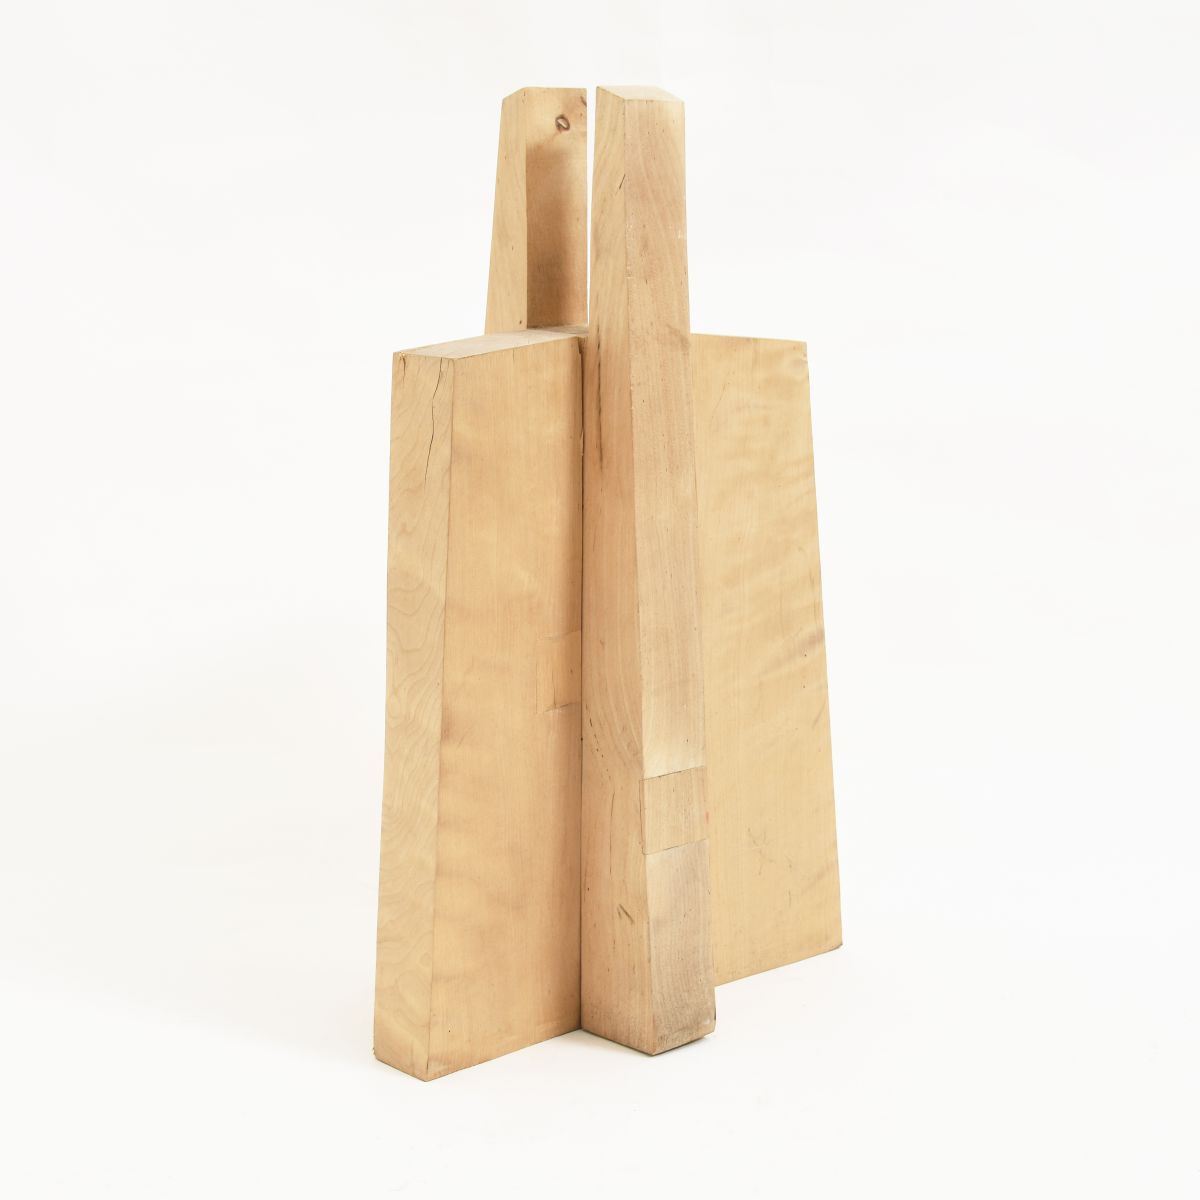 Anonymous-Wooden-Archtectural-Sclupture